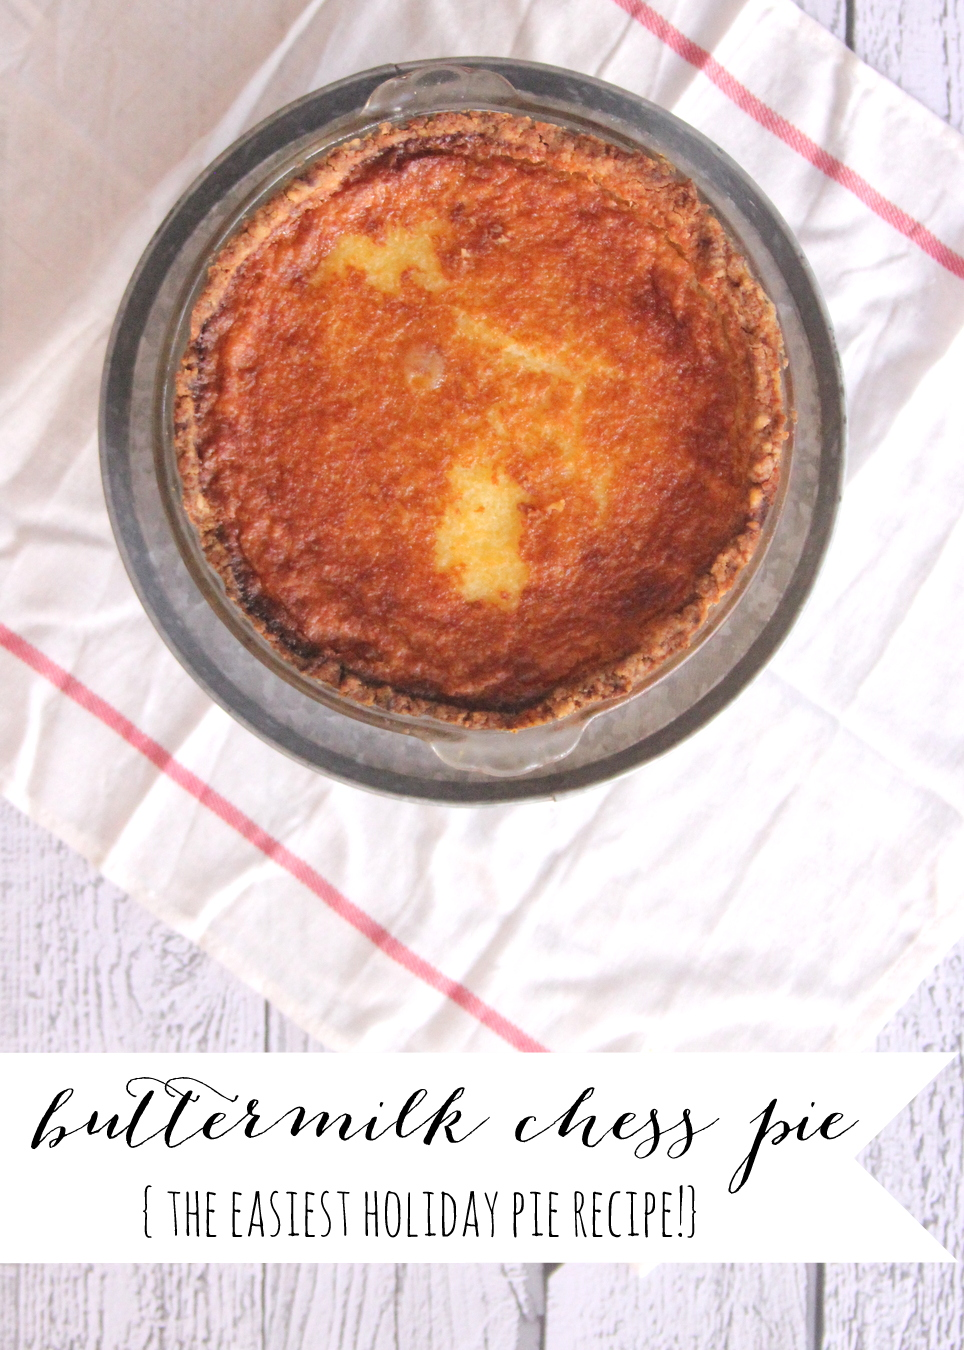 the easiest holiday pie- buttermilk chess pie (this homemade pie comes together so easily- it is the perfect pie to add to your Christmas menu!)